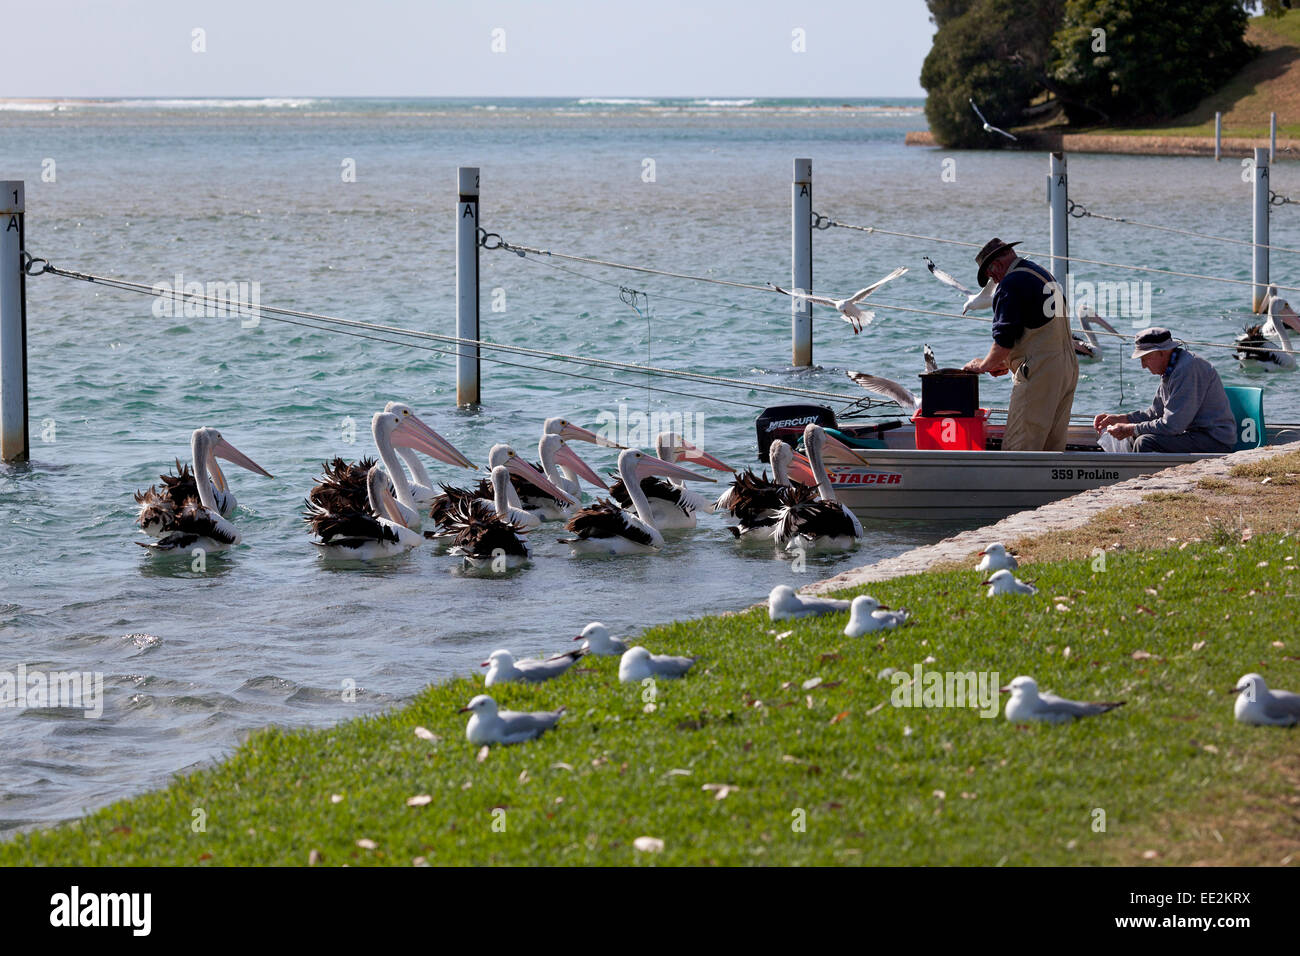 Pelicans in Mallacoota Inlet watching fishermen cleaning fish in Gippsland, victoria, Australia - Stock Image